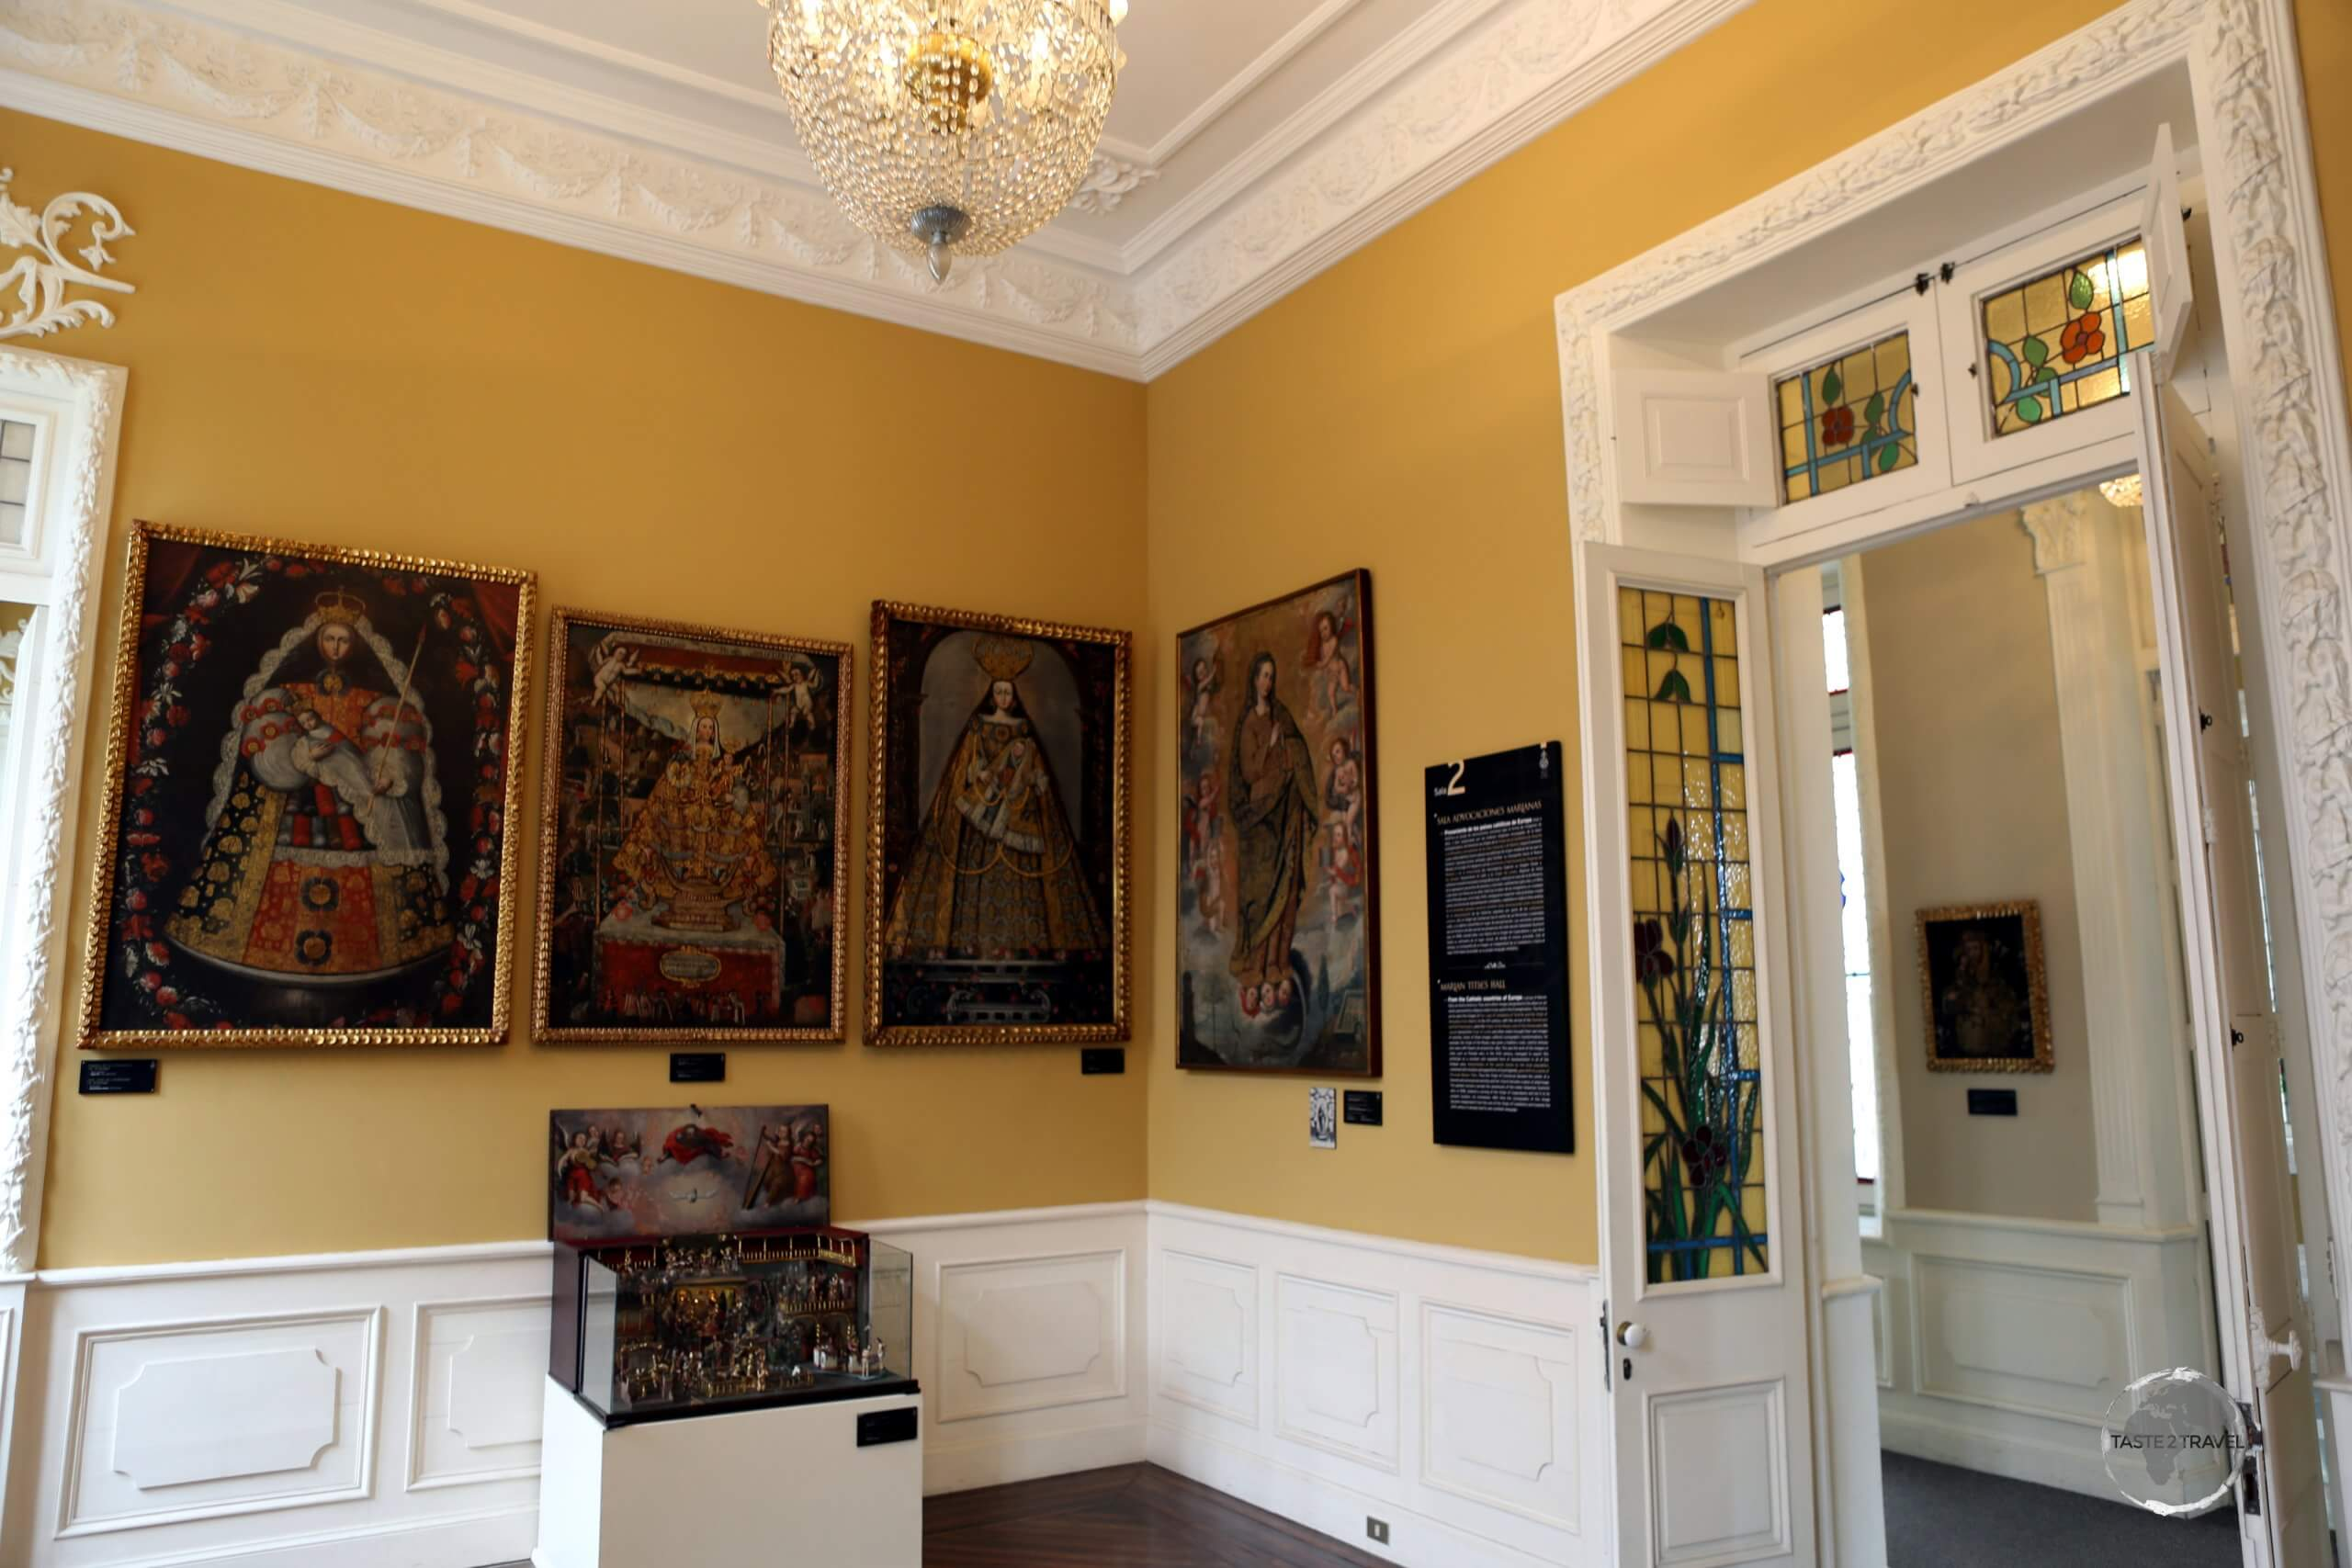 The 'Marian Devotion Room' at the 'Museo Pedro de Osma' in Lima, features different religious artworks of the Virgin Mary.